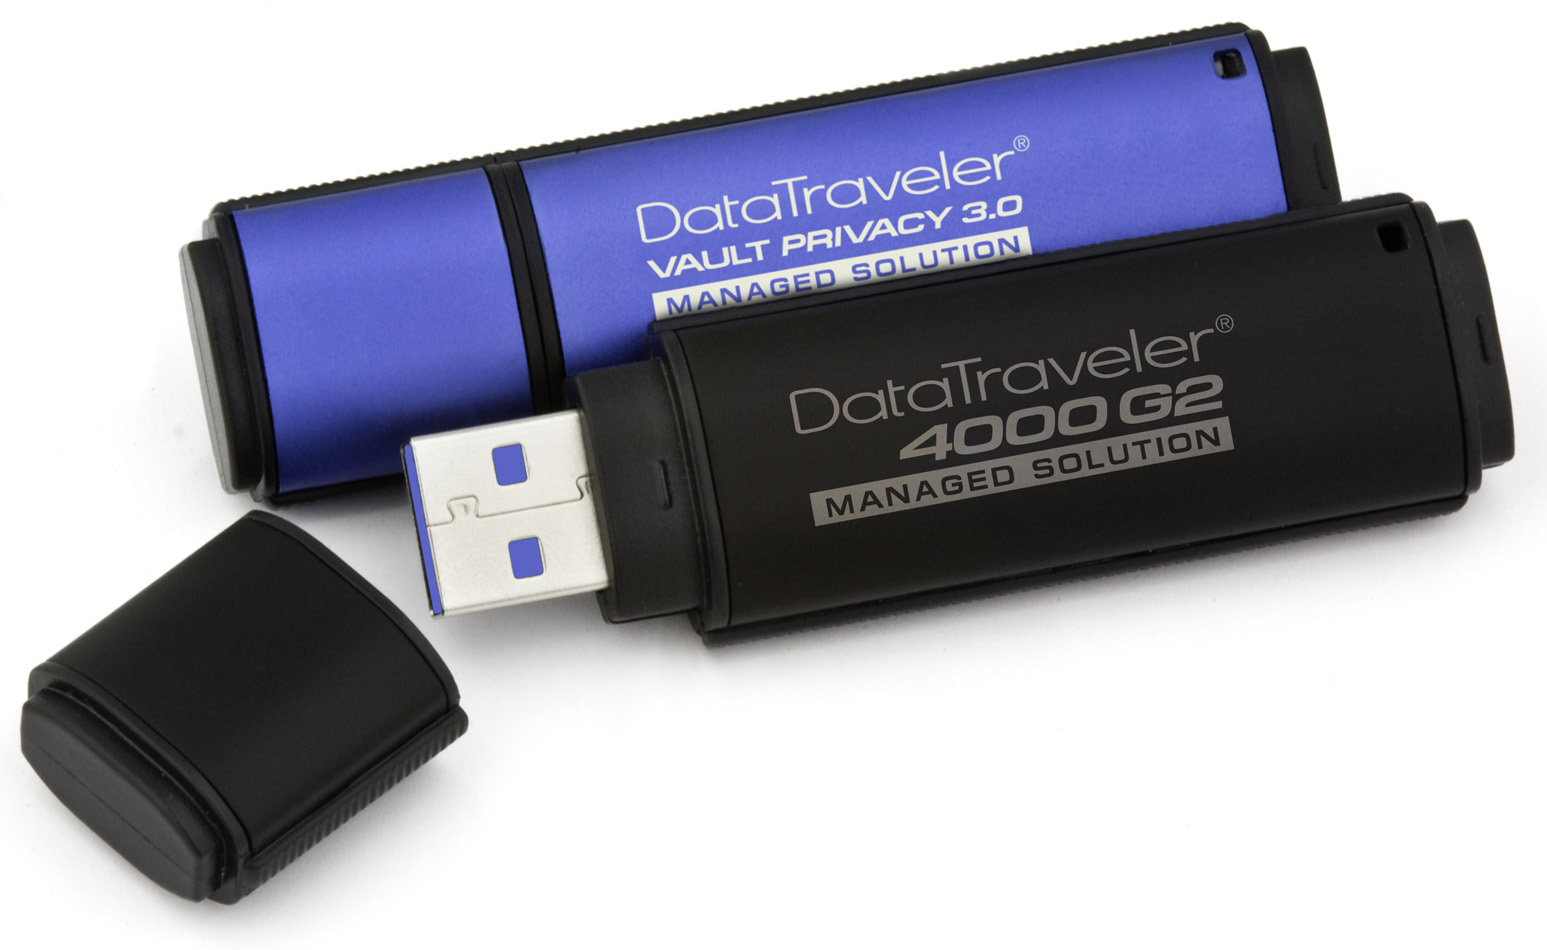 Kingston ardware-Encrypted USB Flash Drives